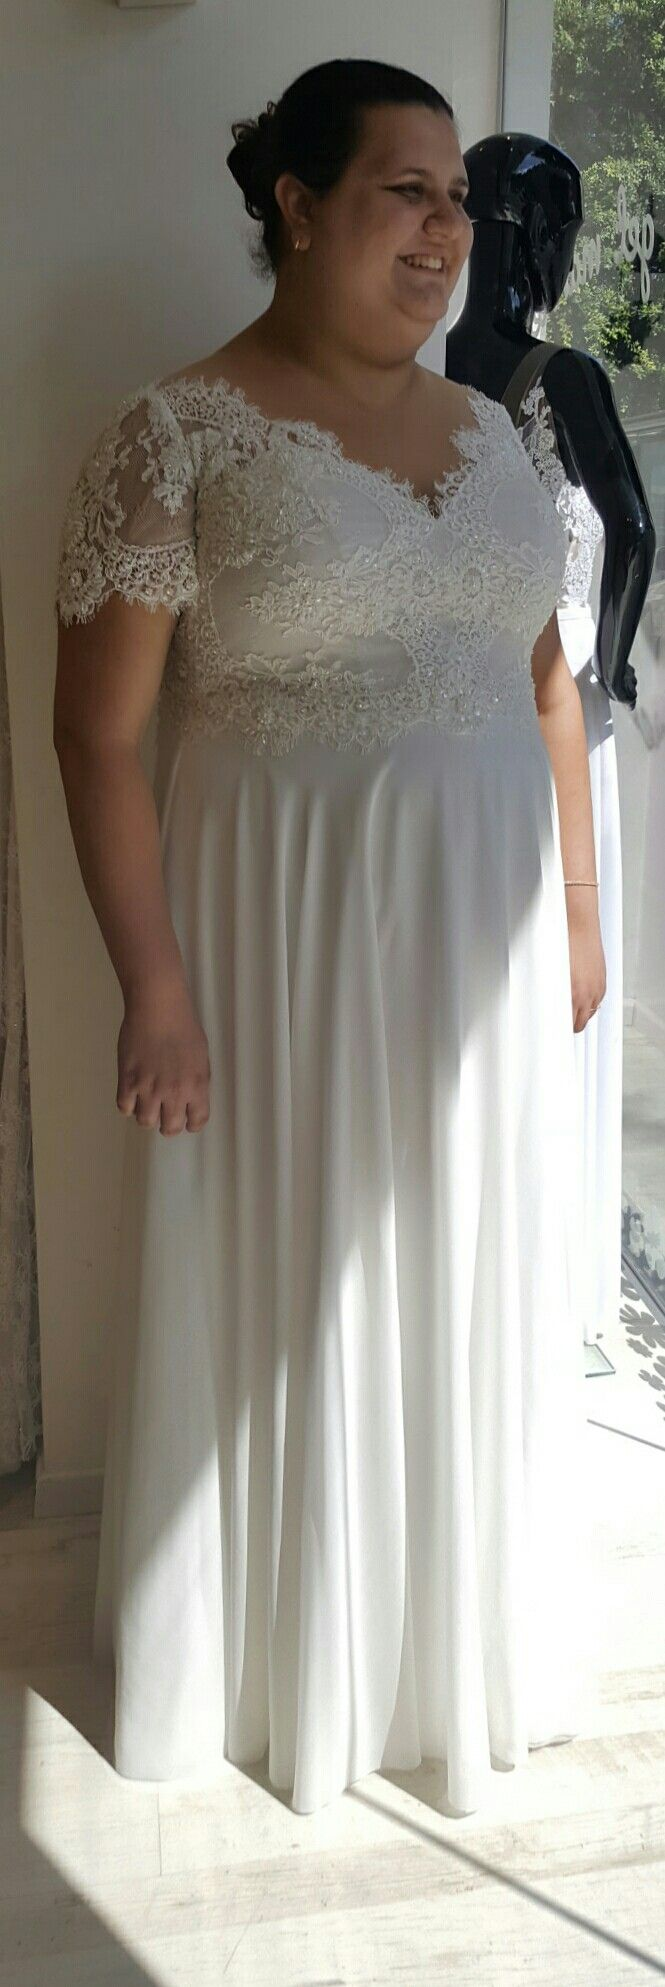 Elegant Boho bride in plus size wedding gown with short sleeves anx simple skirt Scarlet